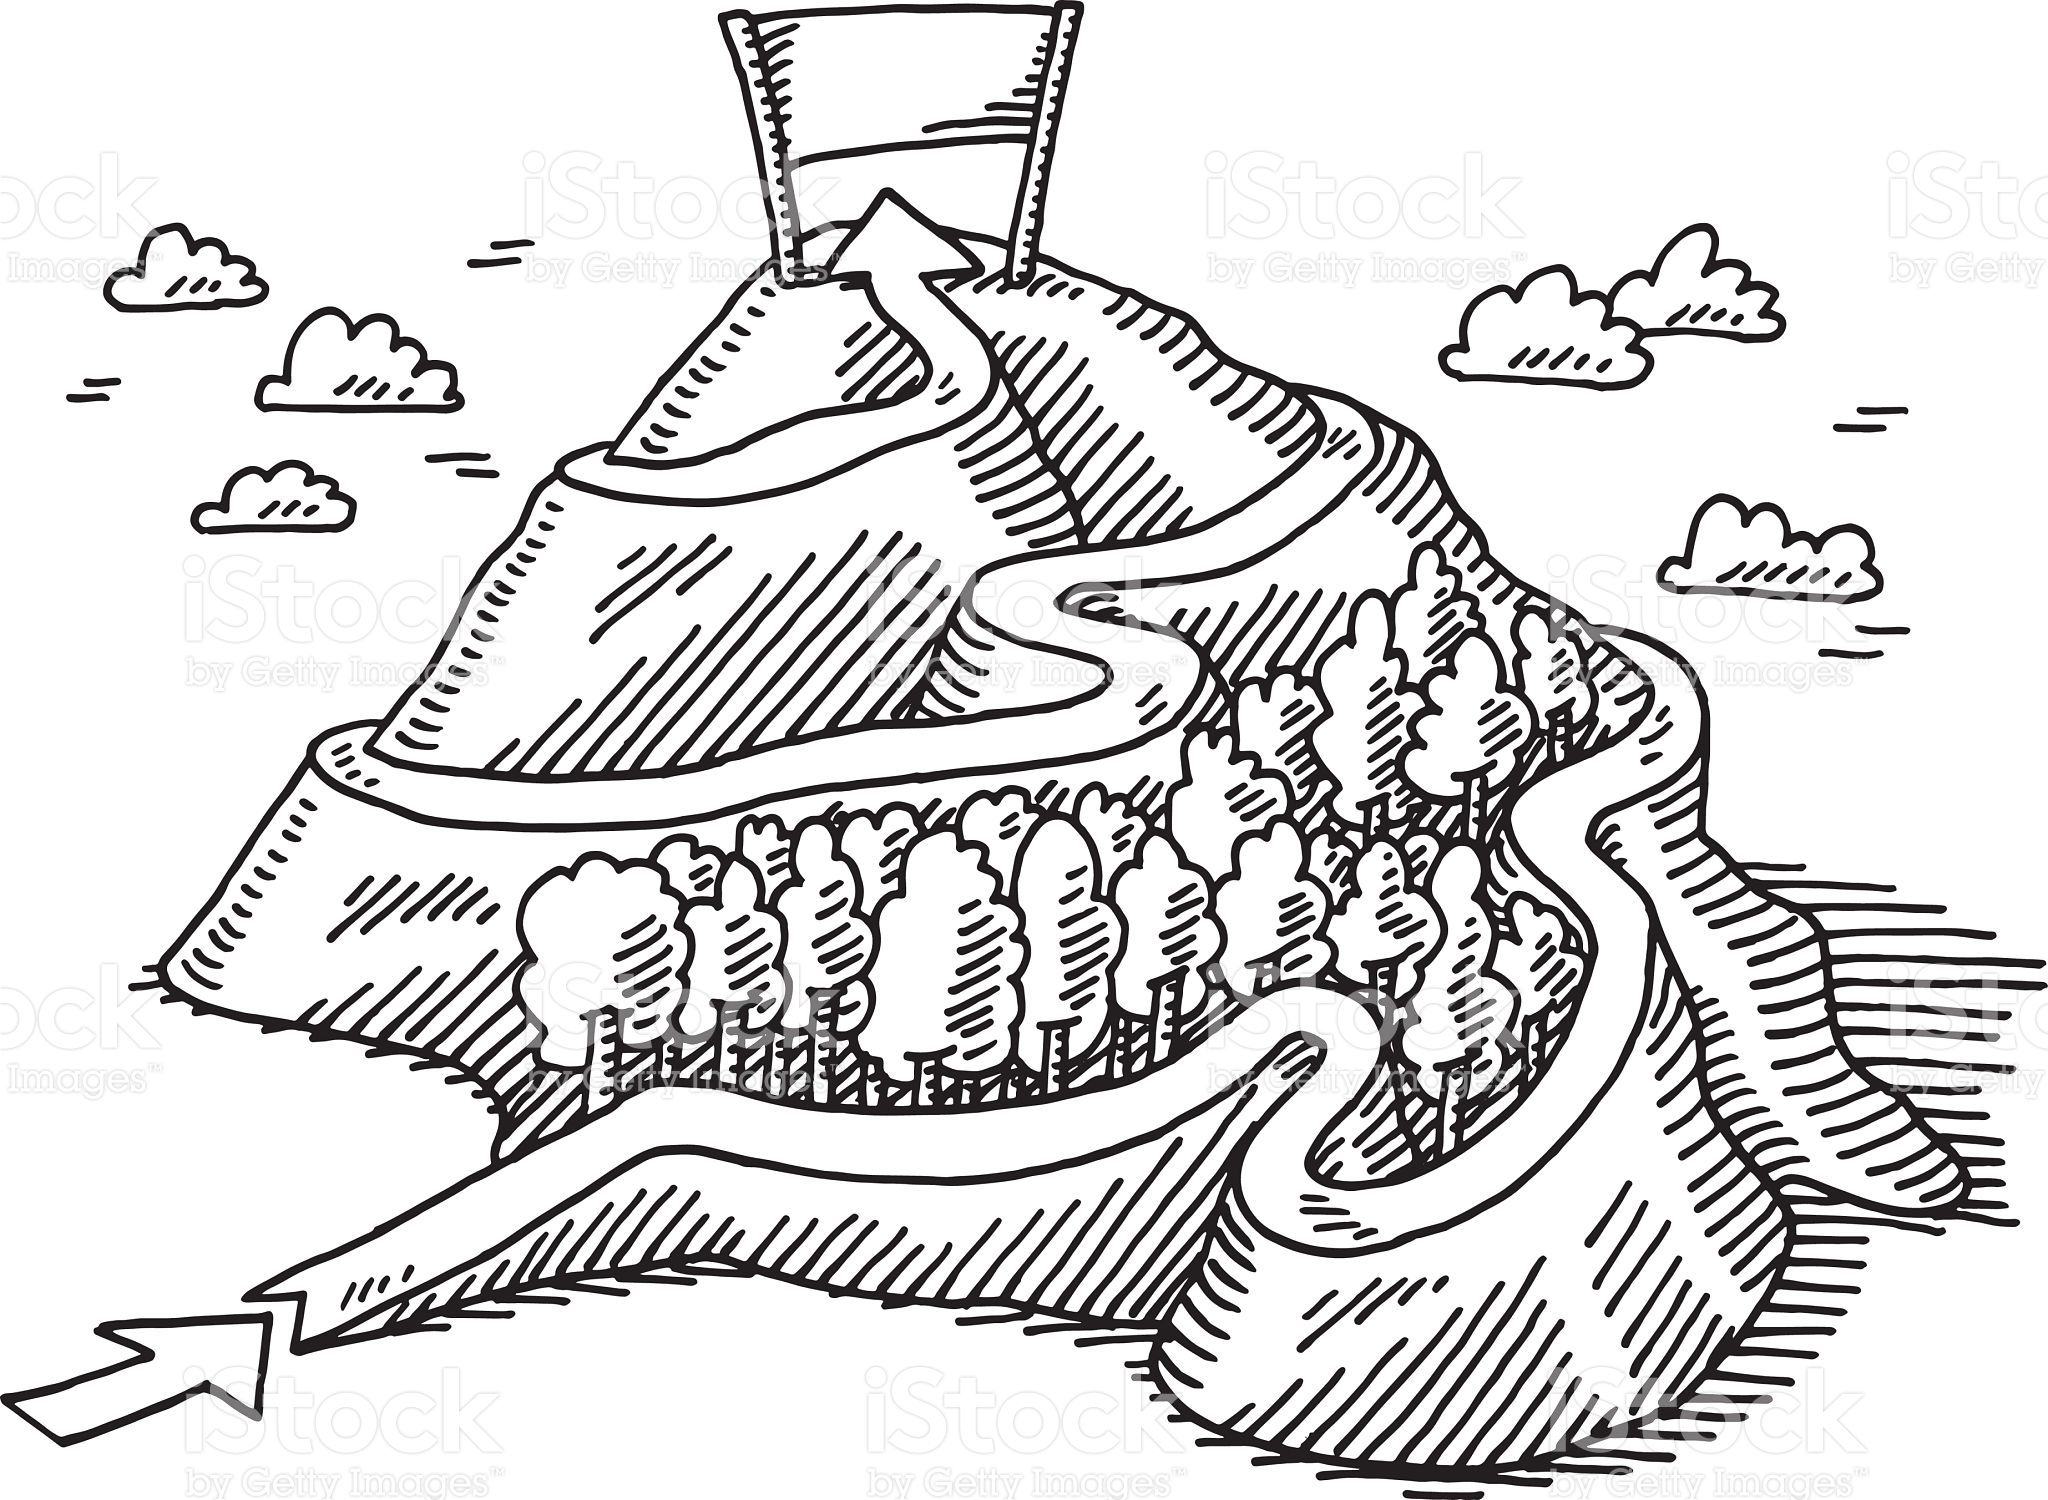 Handdrawn vector drawing of a Start Finish Path Mountain